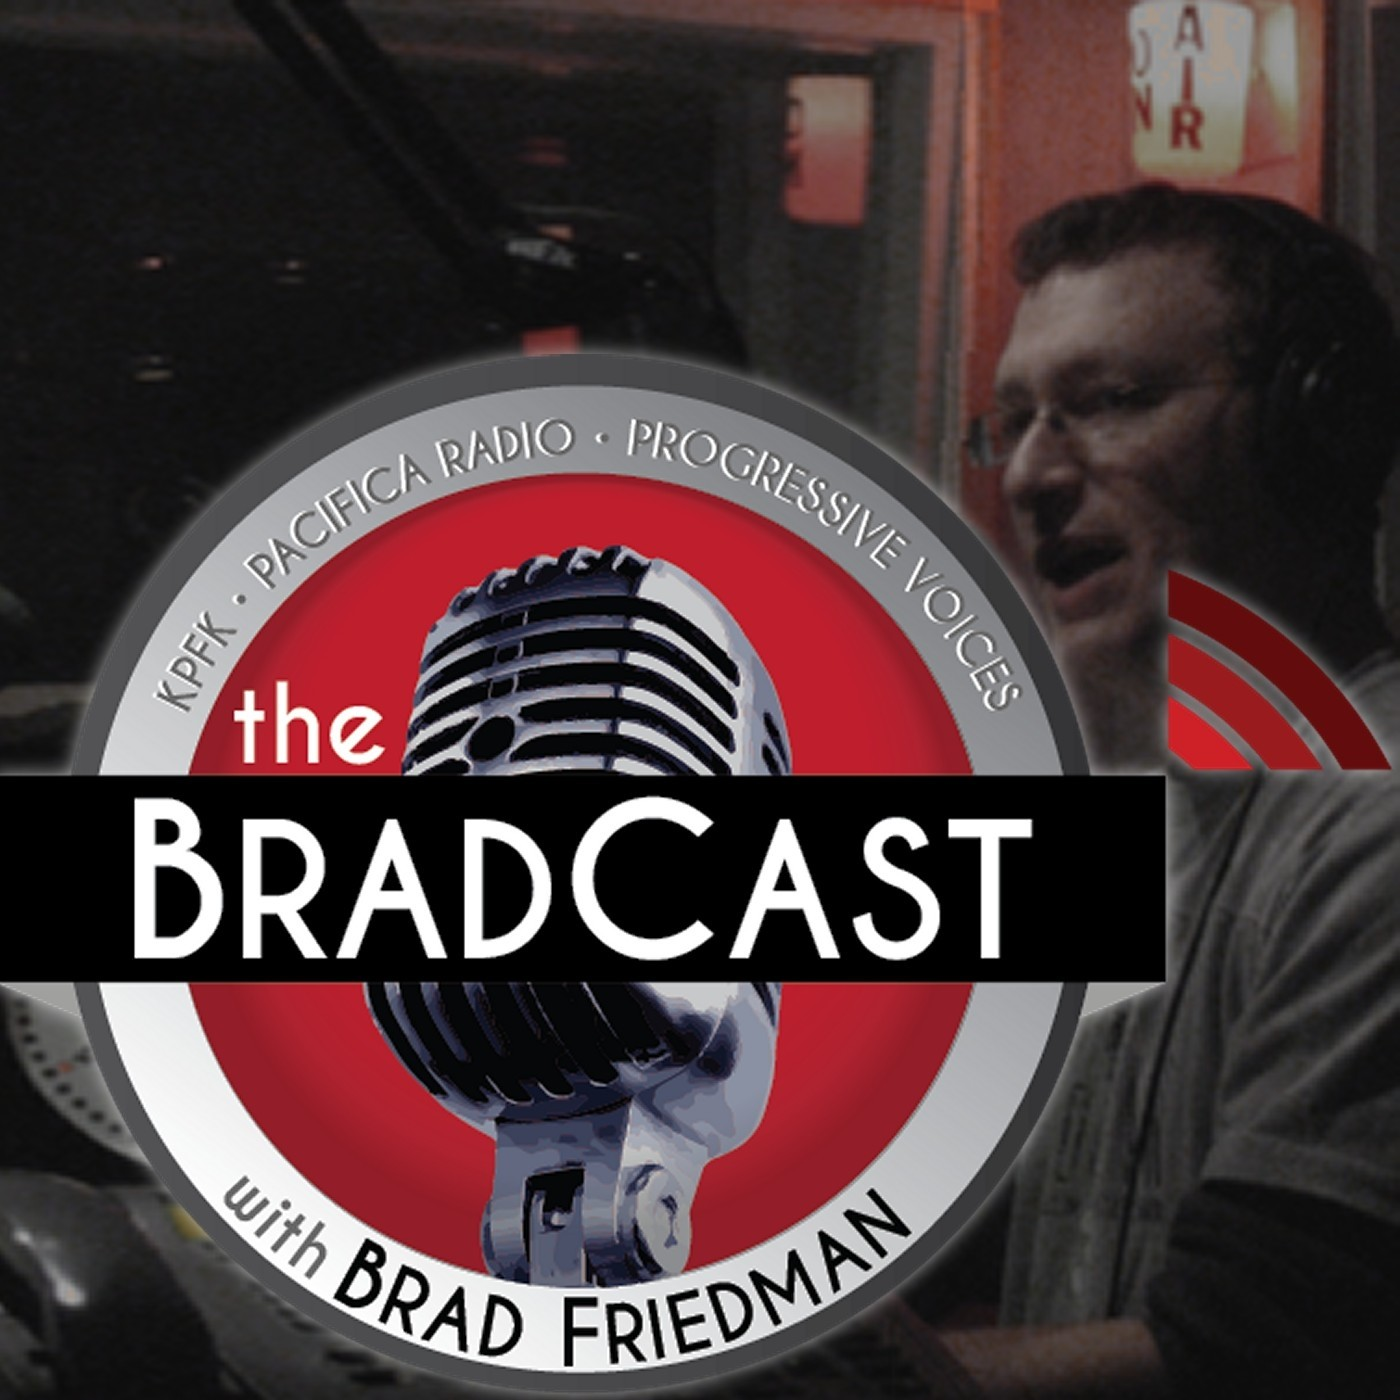 BradCast 7/10/2013 (Guest: FBI Whistleblower Colleen Rowley)